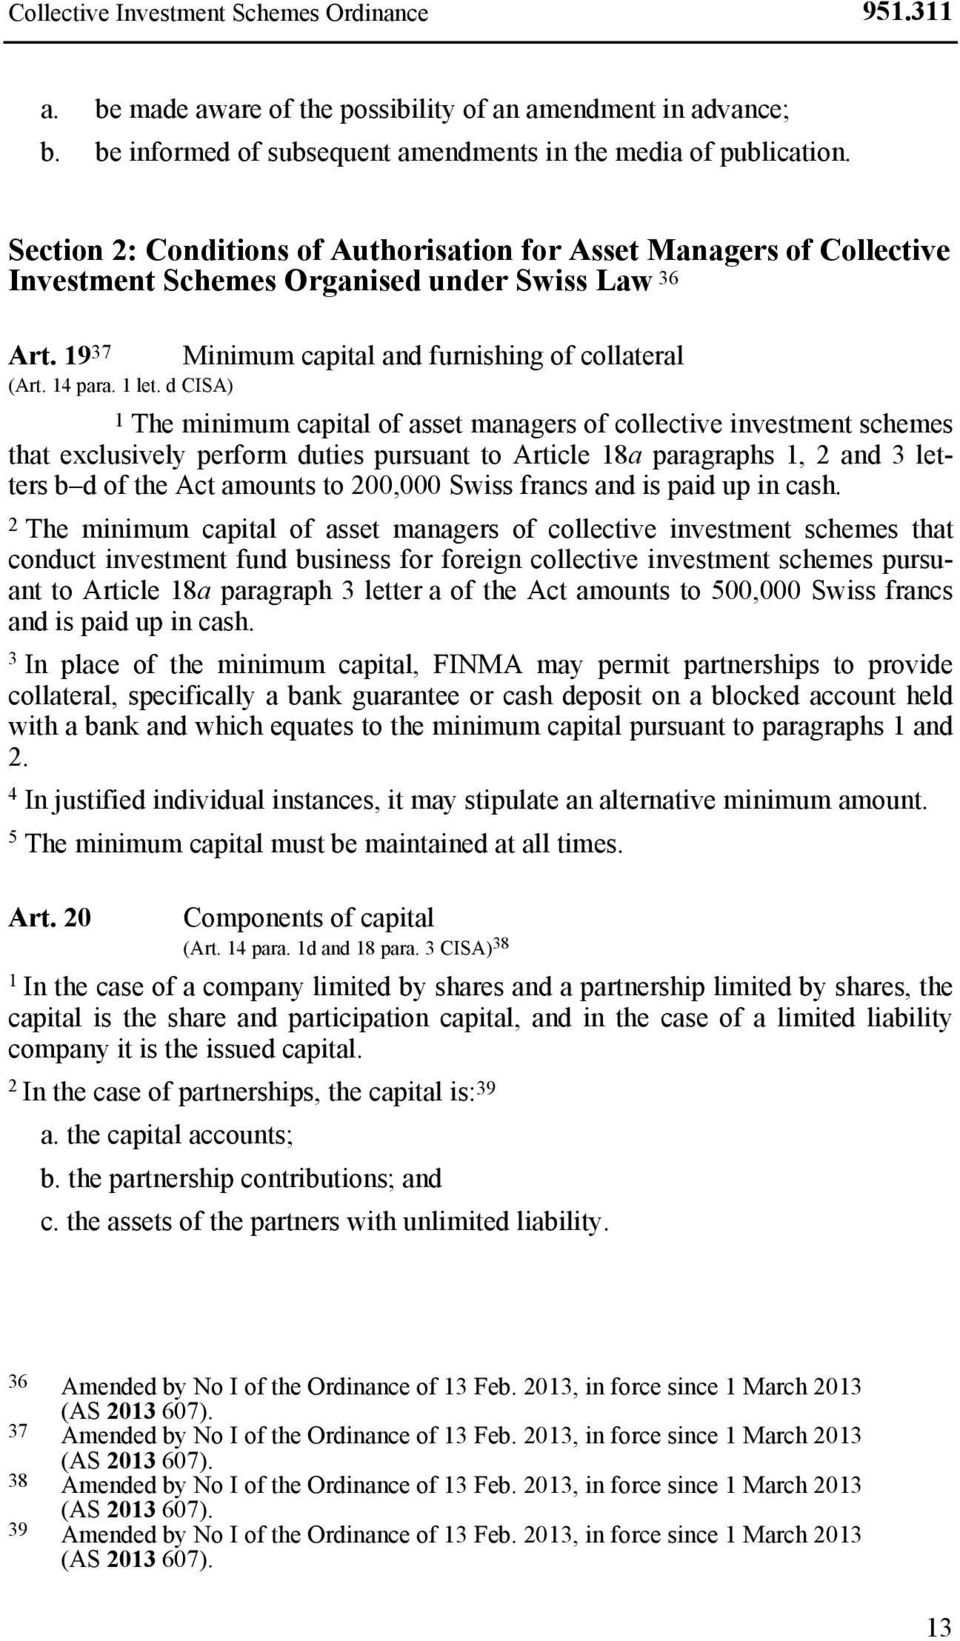 d CISA) Minimum capital and furnishing of collateral 1 The minimum capital of asset managers of collective investment schemes that exclusively perform duties pursuant to Article 18a paragraphs 1, 2